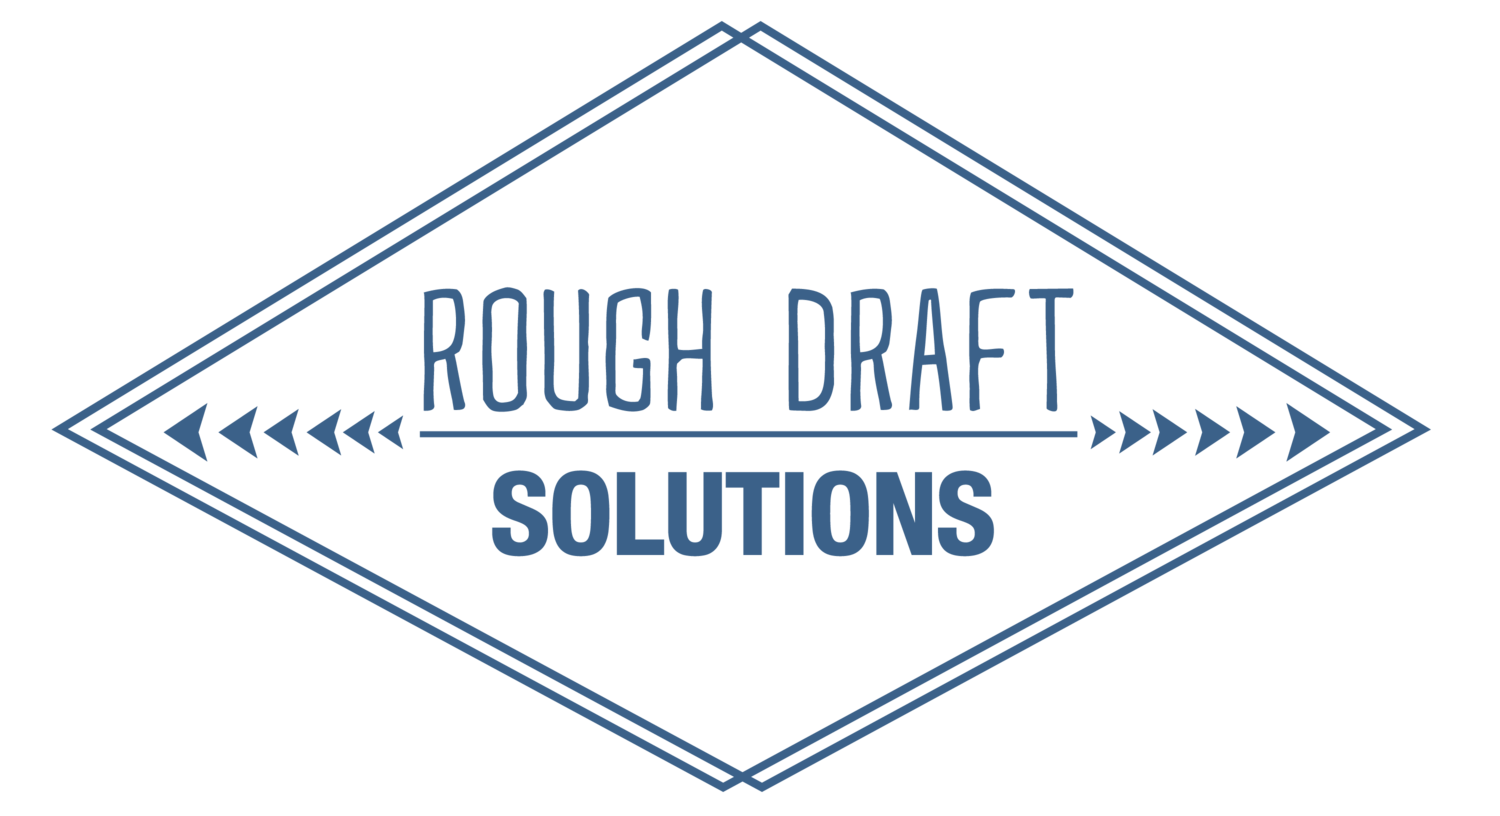 how to walk the line between being professional and personable in rough draft solutions